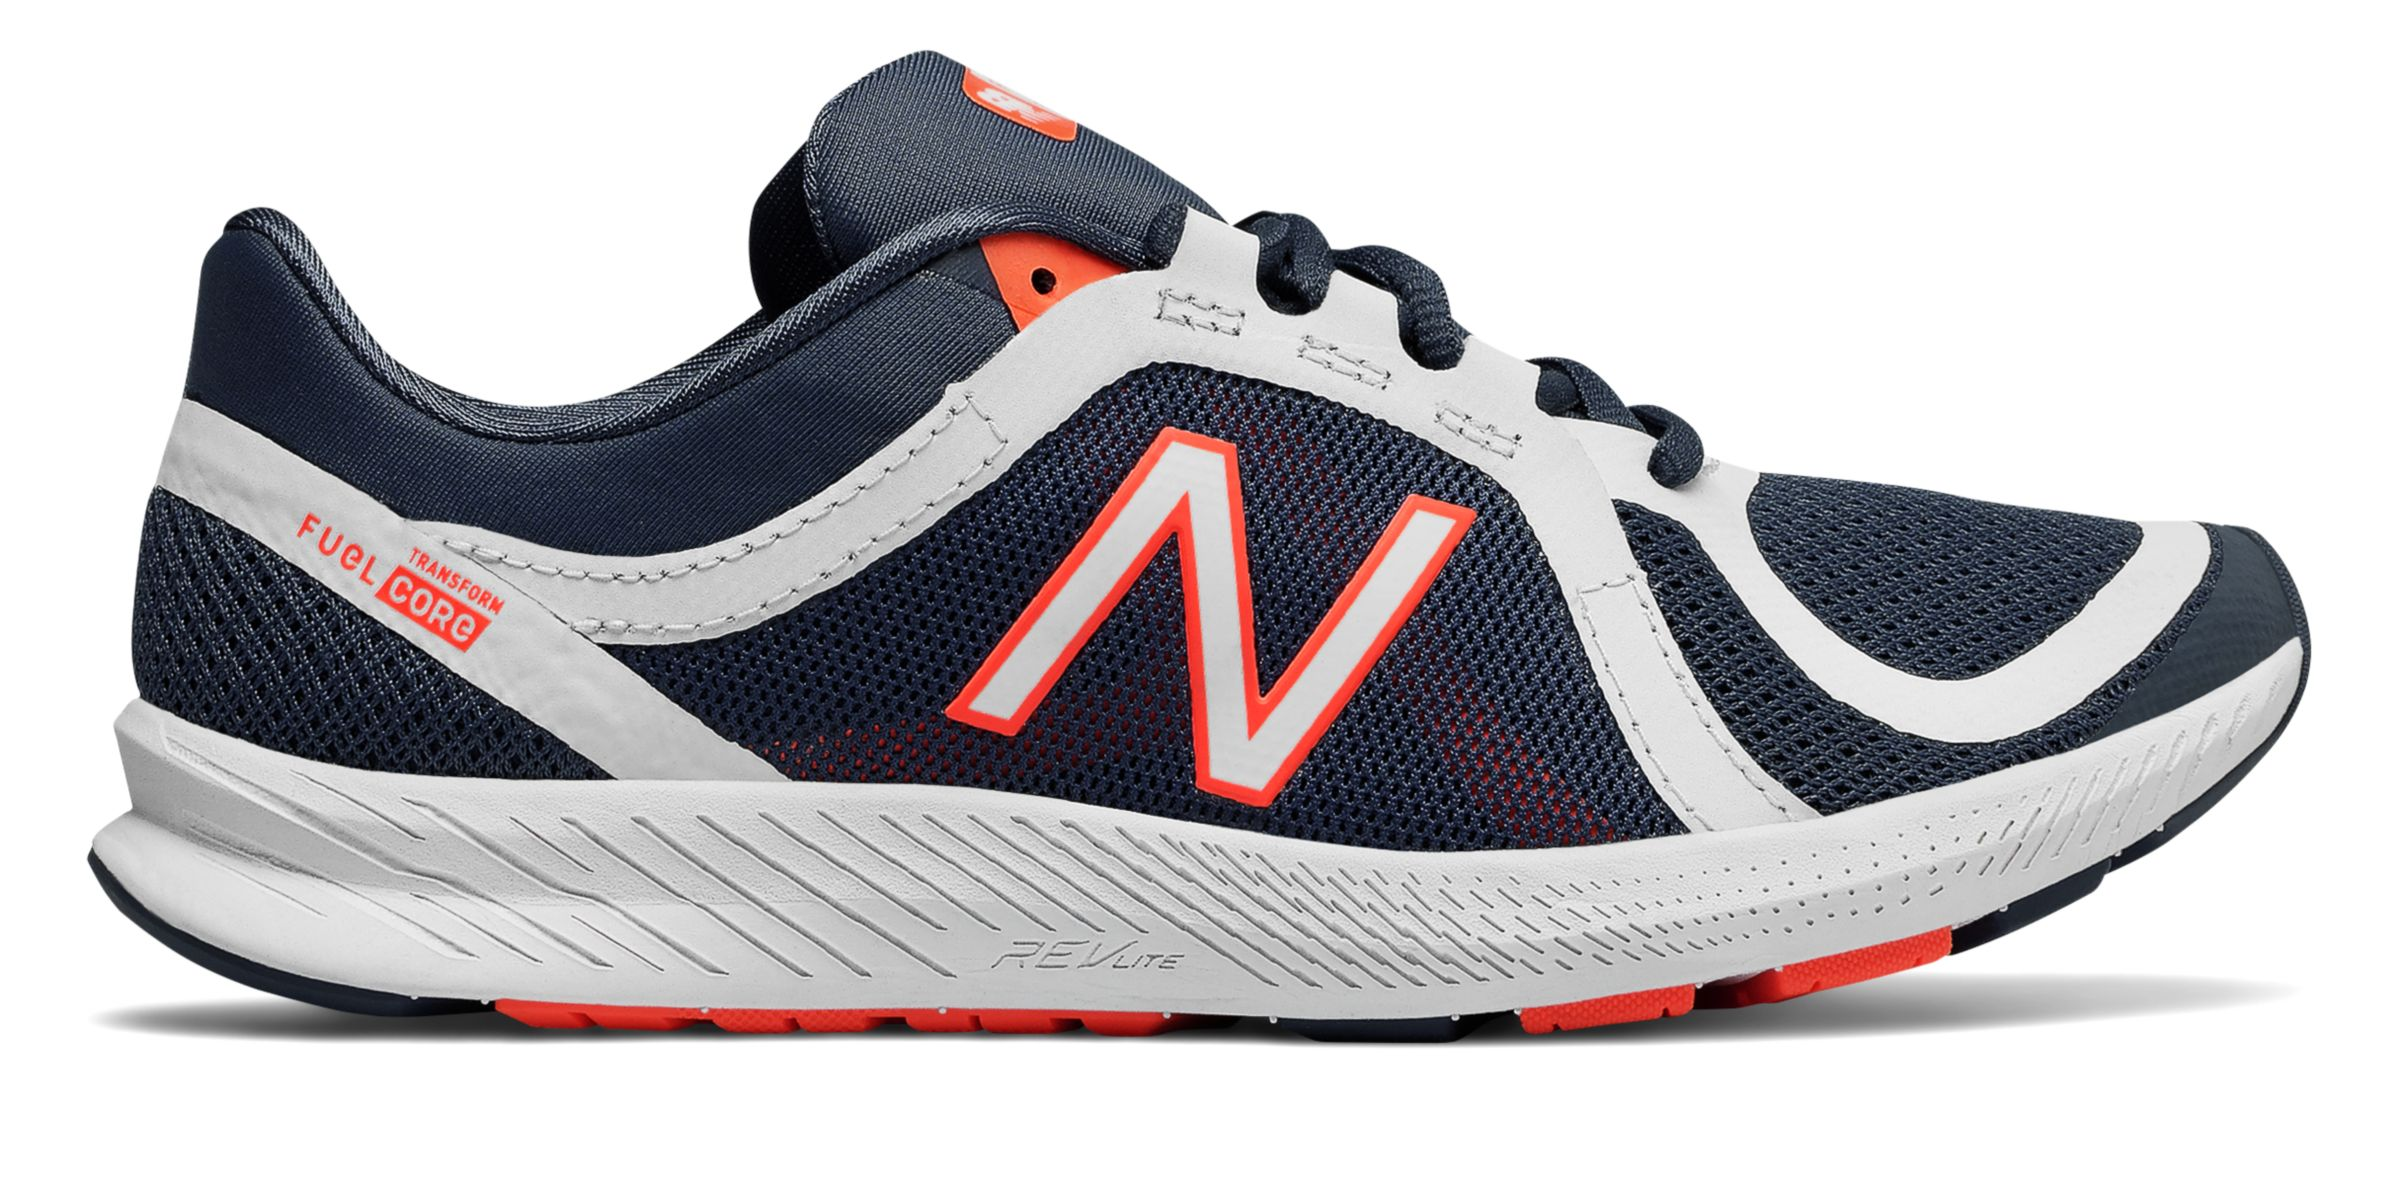 NB FuelCore Transform v2 Mesh Trainer, Vintage Indigo with White & Vivid Tangerine